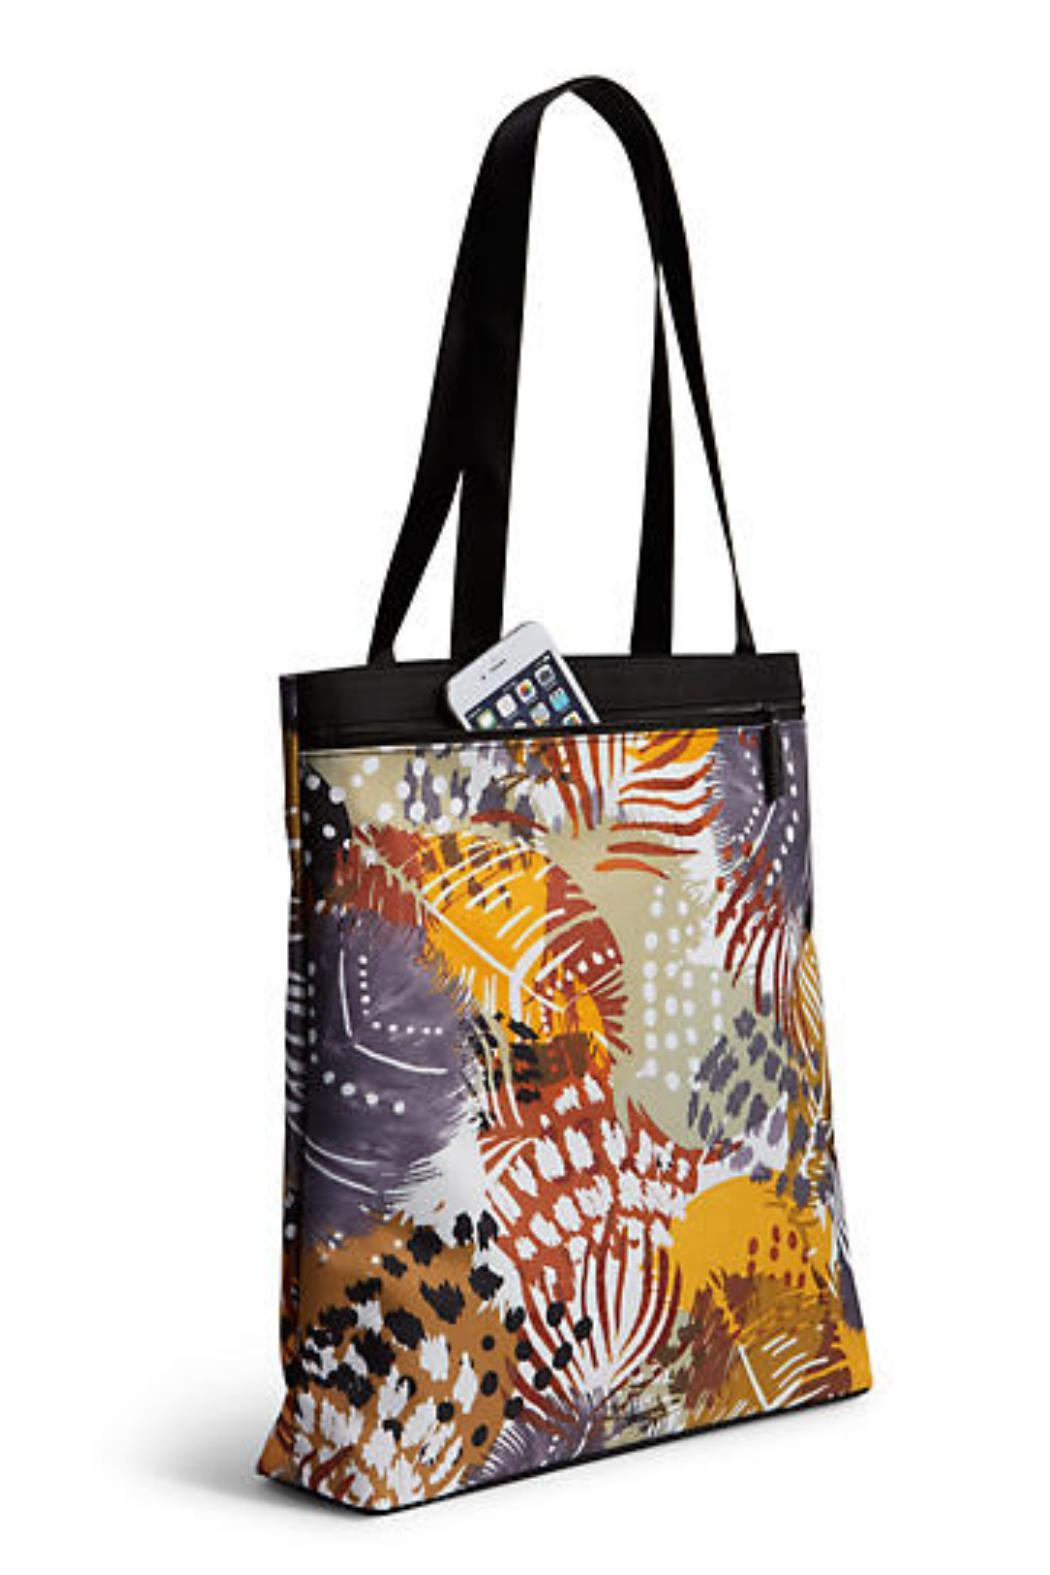 Vera Bradley Painted Feathers Tote From Kentucky By Mimi S